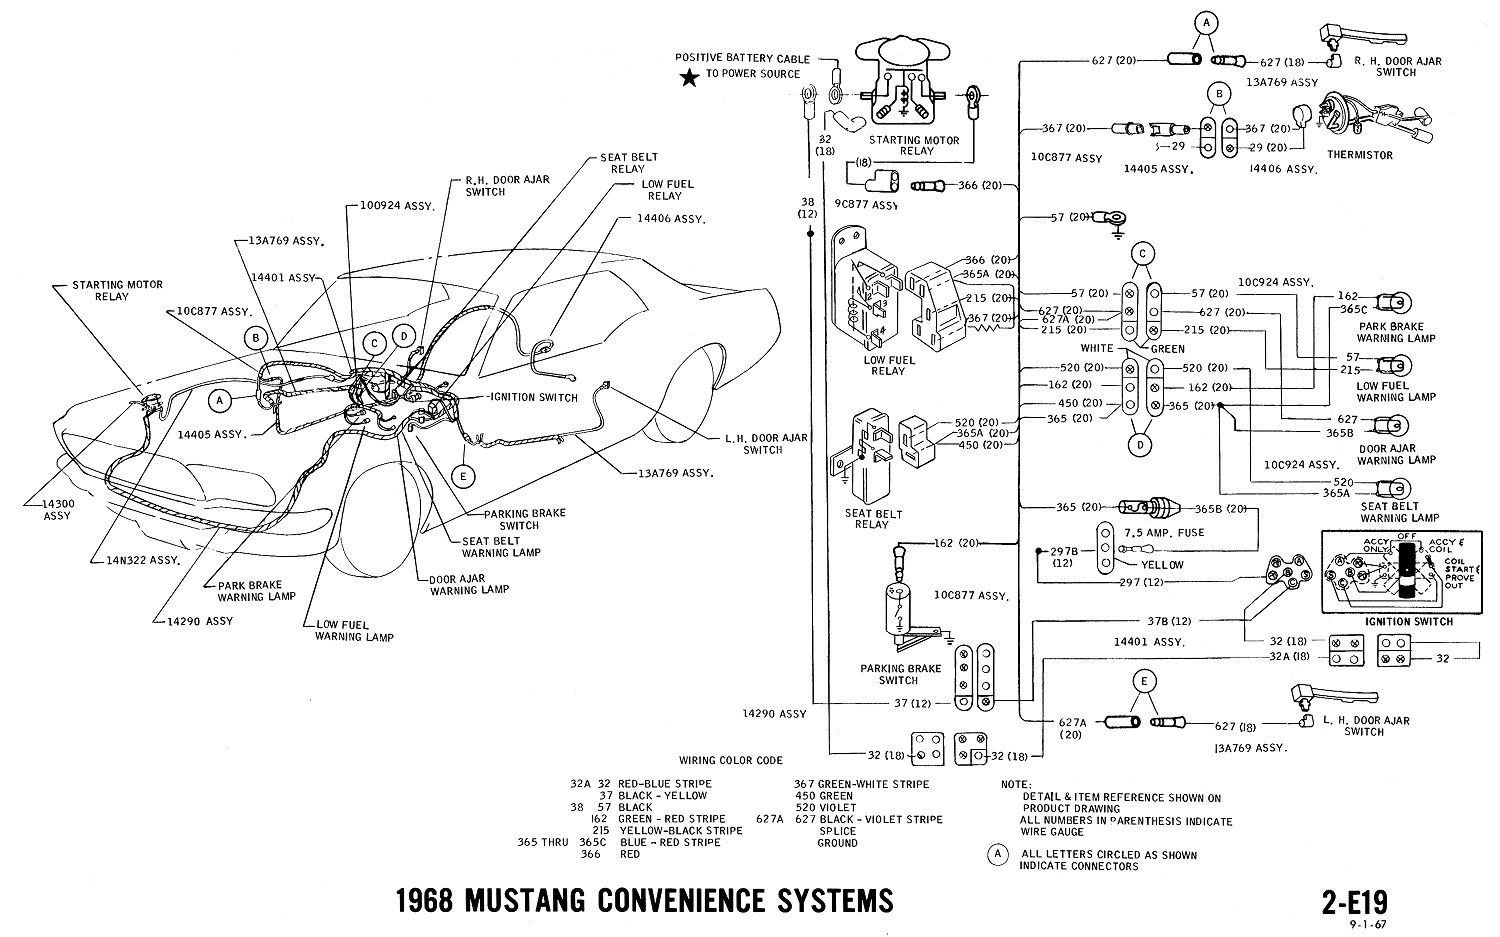 1968 mustang wiring diagram convenience systems 65 mustang dash wiring diagram 1965 ford mustang wiring diagram 1965 ford mustang wiring diagrams at sewacar.co